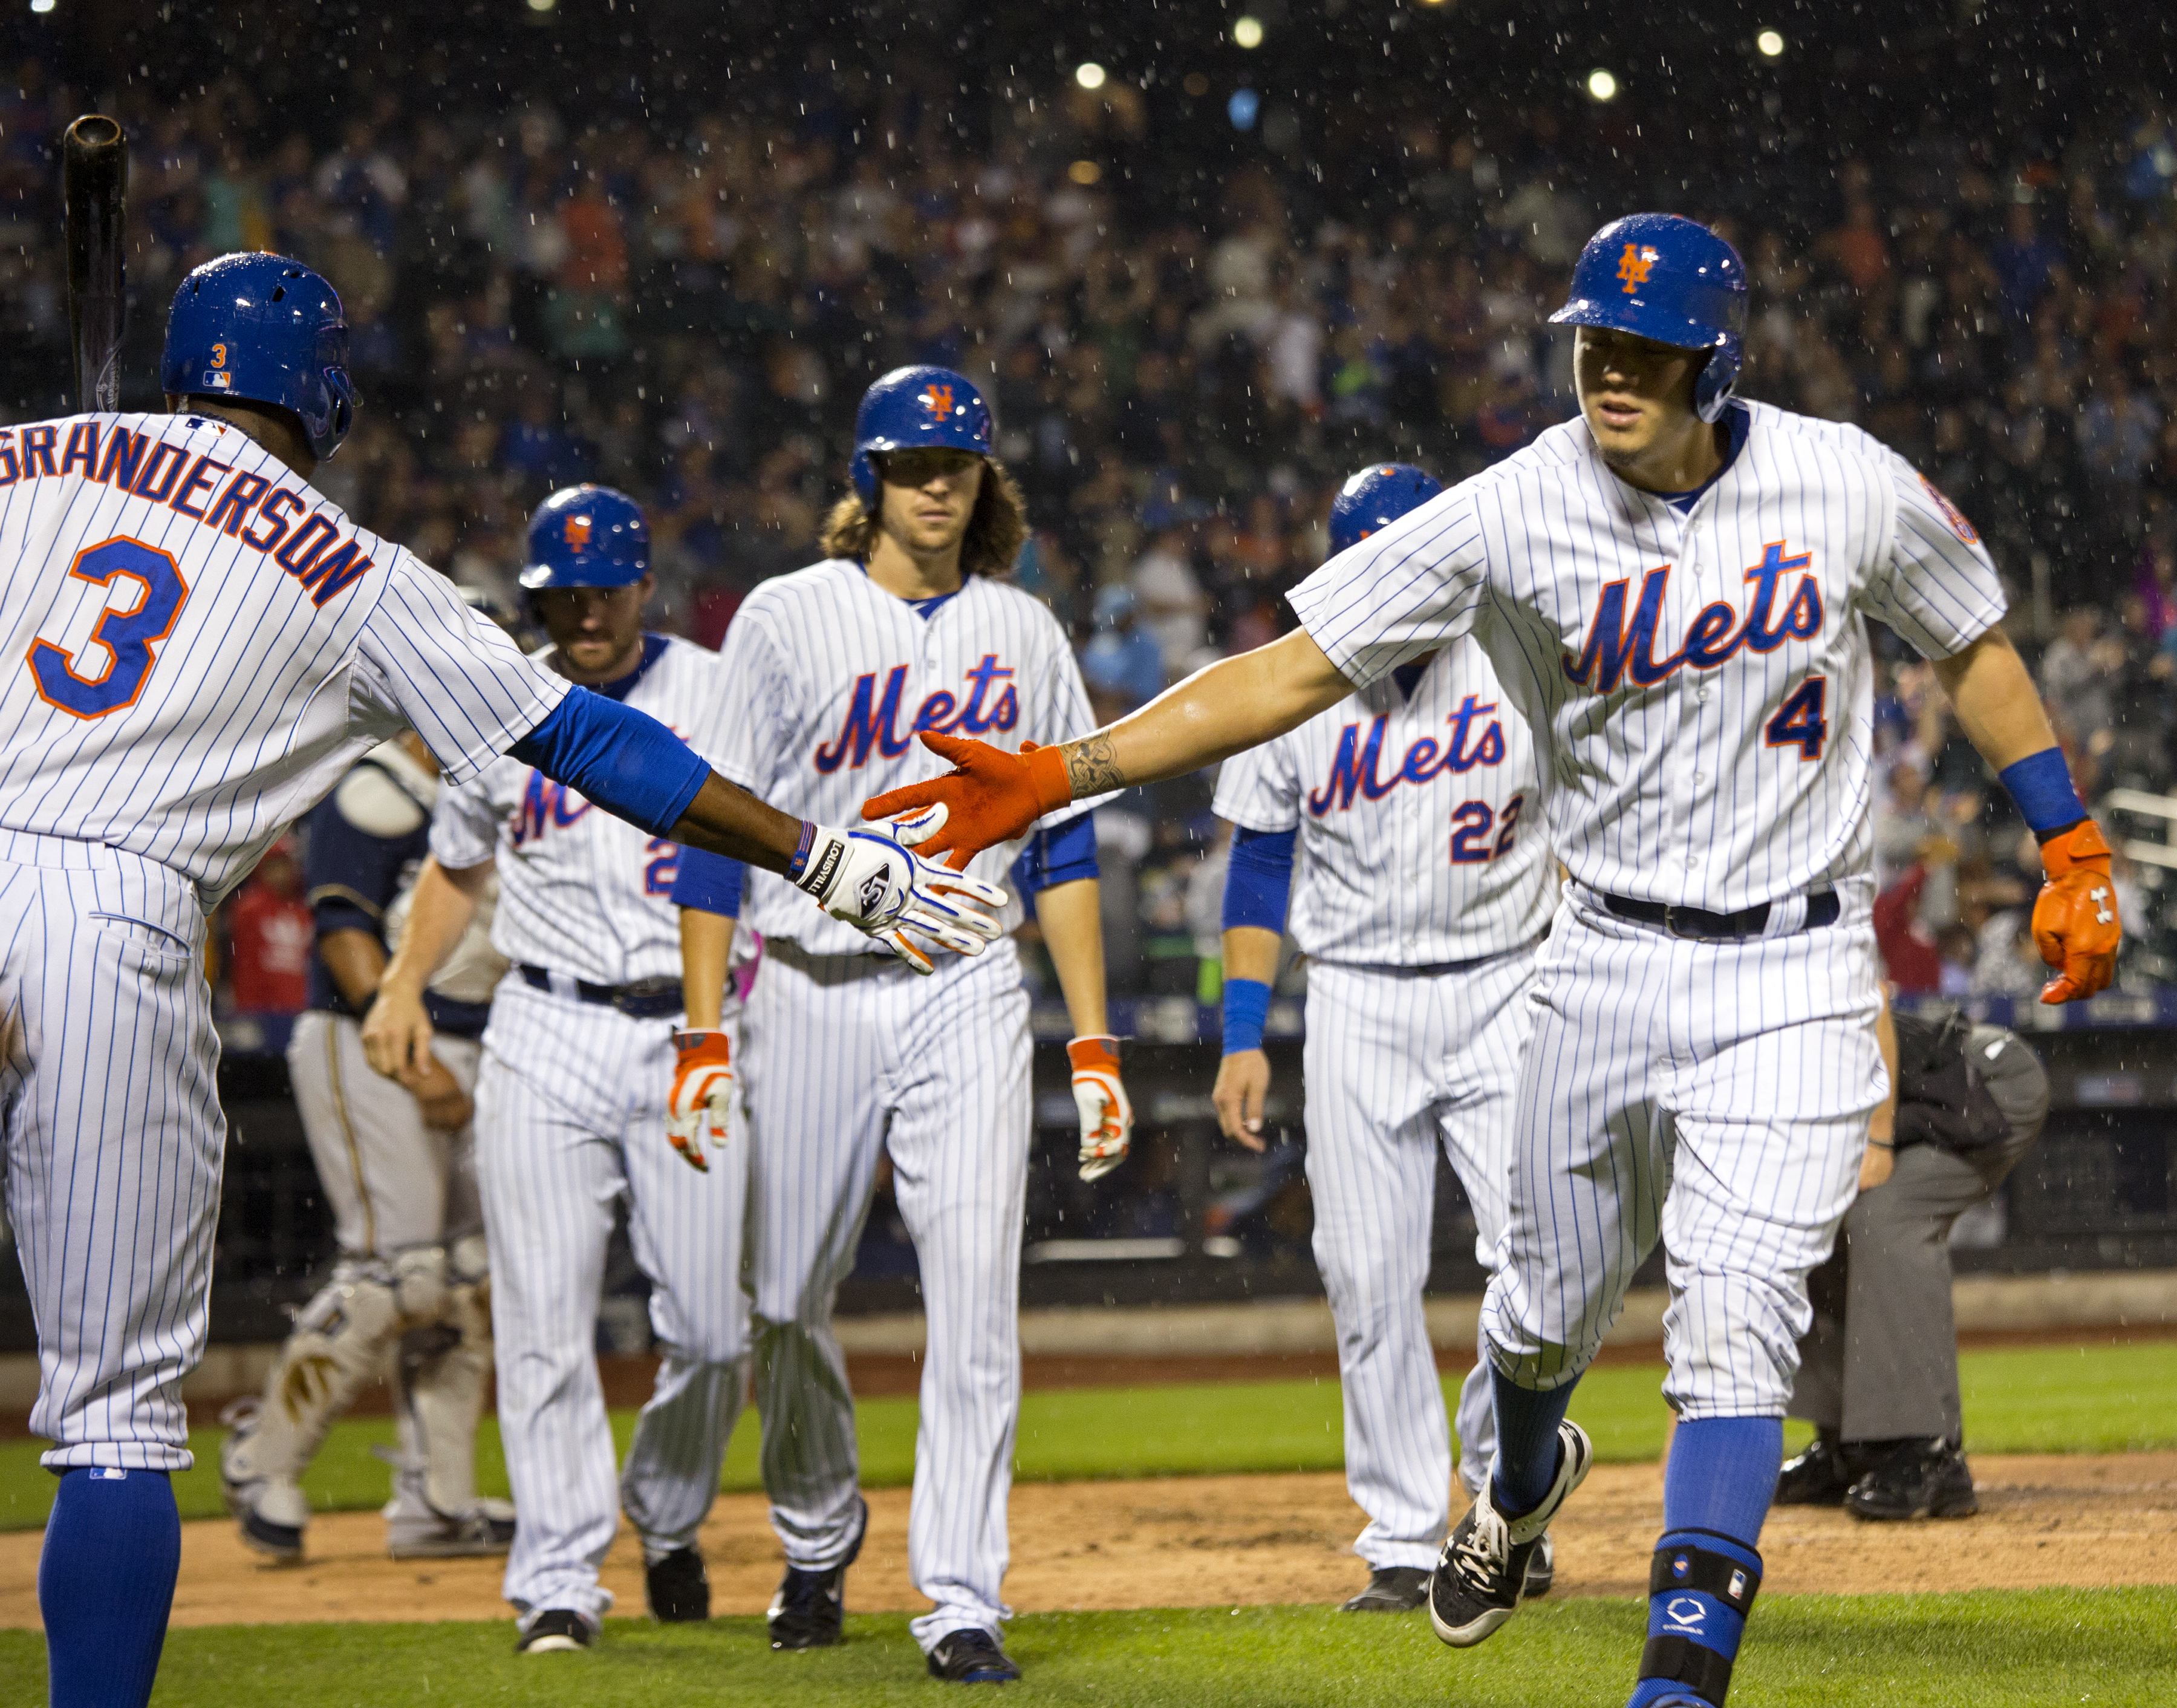 New York Mets' Wilmer Flores (4) is congratulated by teammate Curtis Granderson after hitting a grand slam against the Milwaukee Brewers in the fourth inning of a baseball game Saturday, May 16, 2015, in New York. (AP Photo/Craig Ruttle)